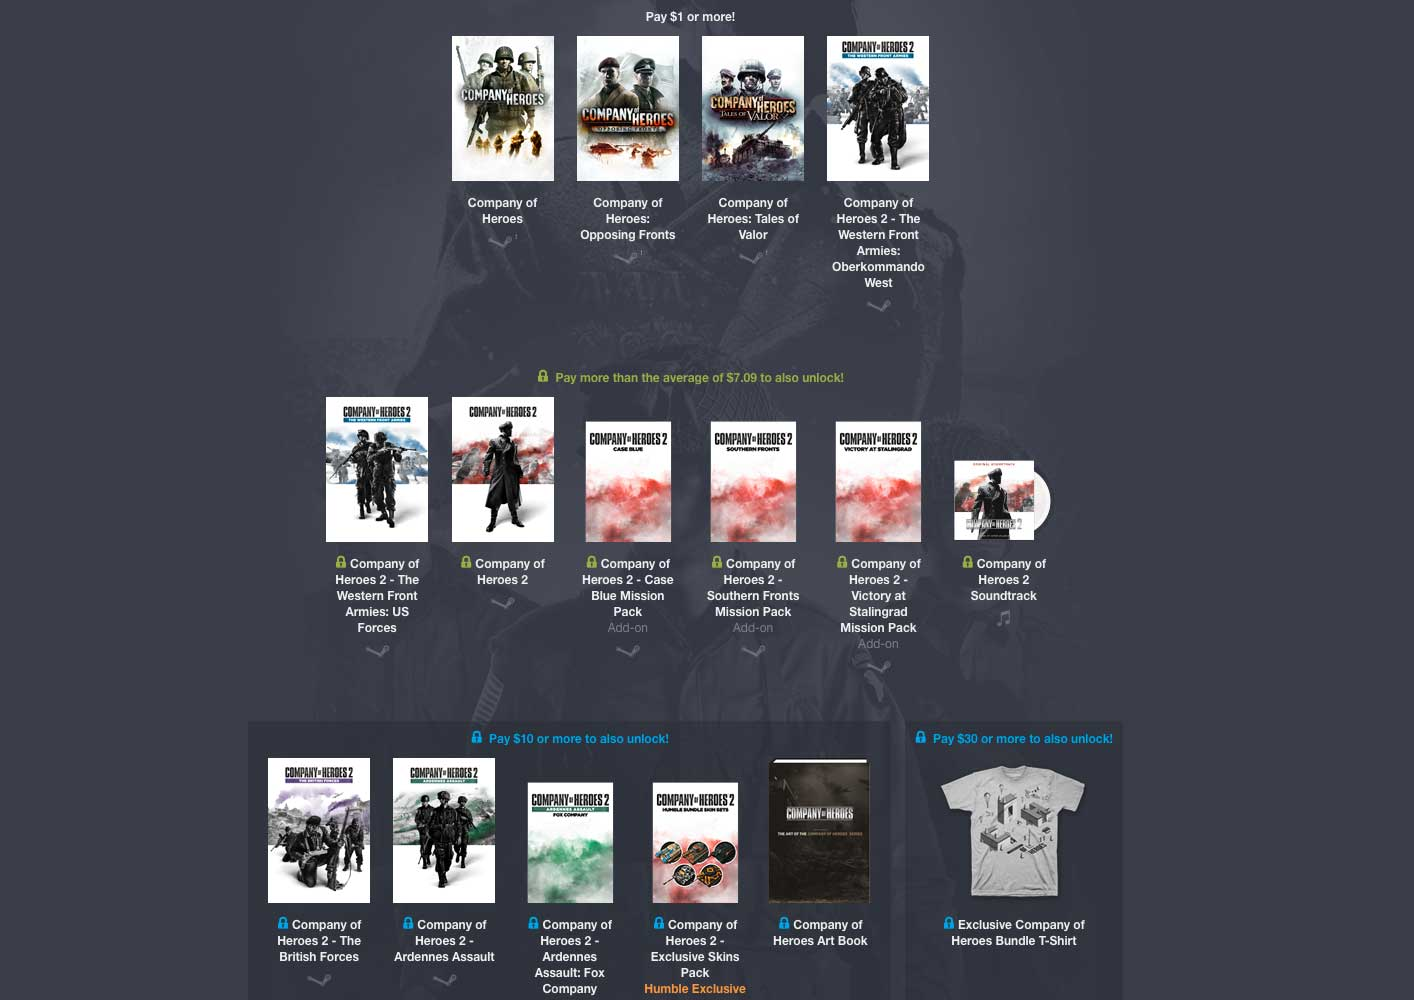 humble_bundle_company_of_heroes